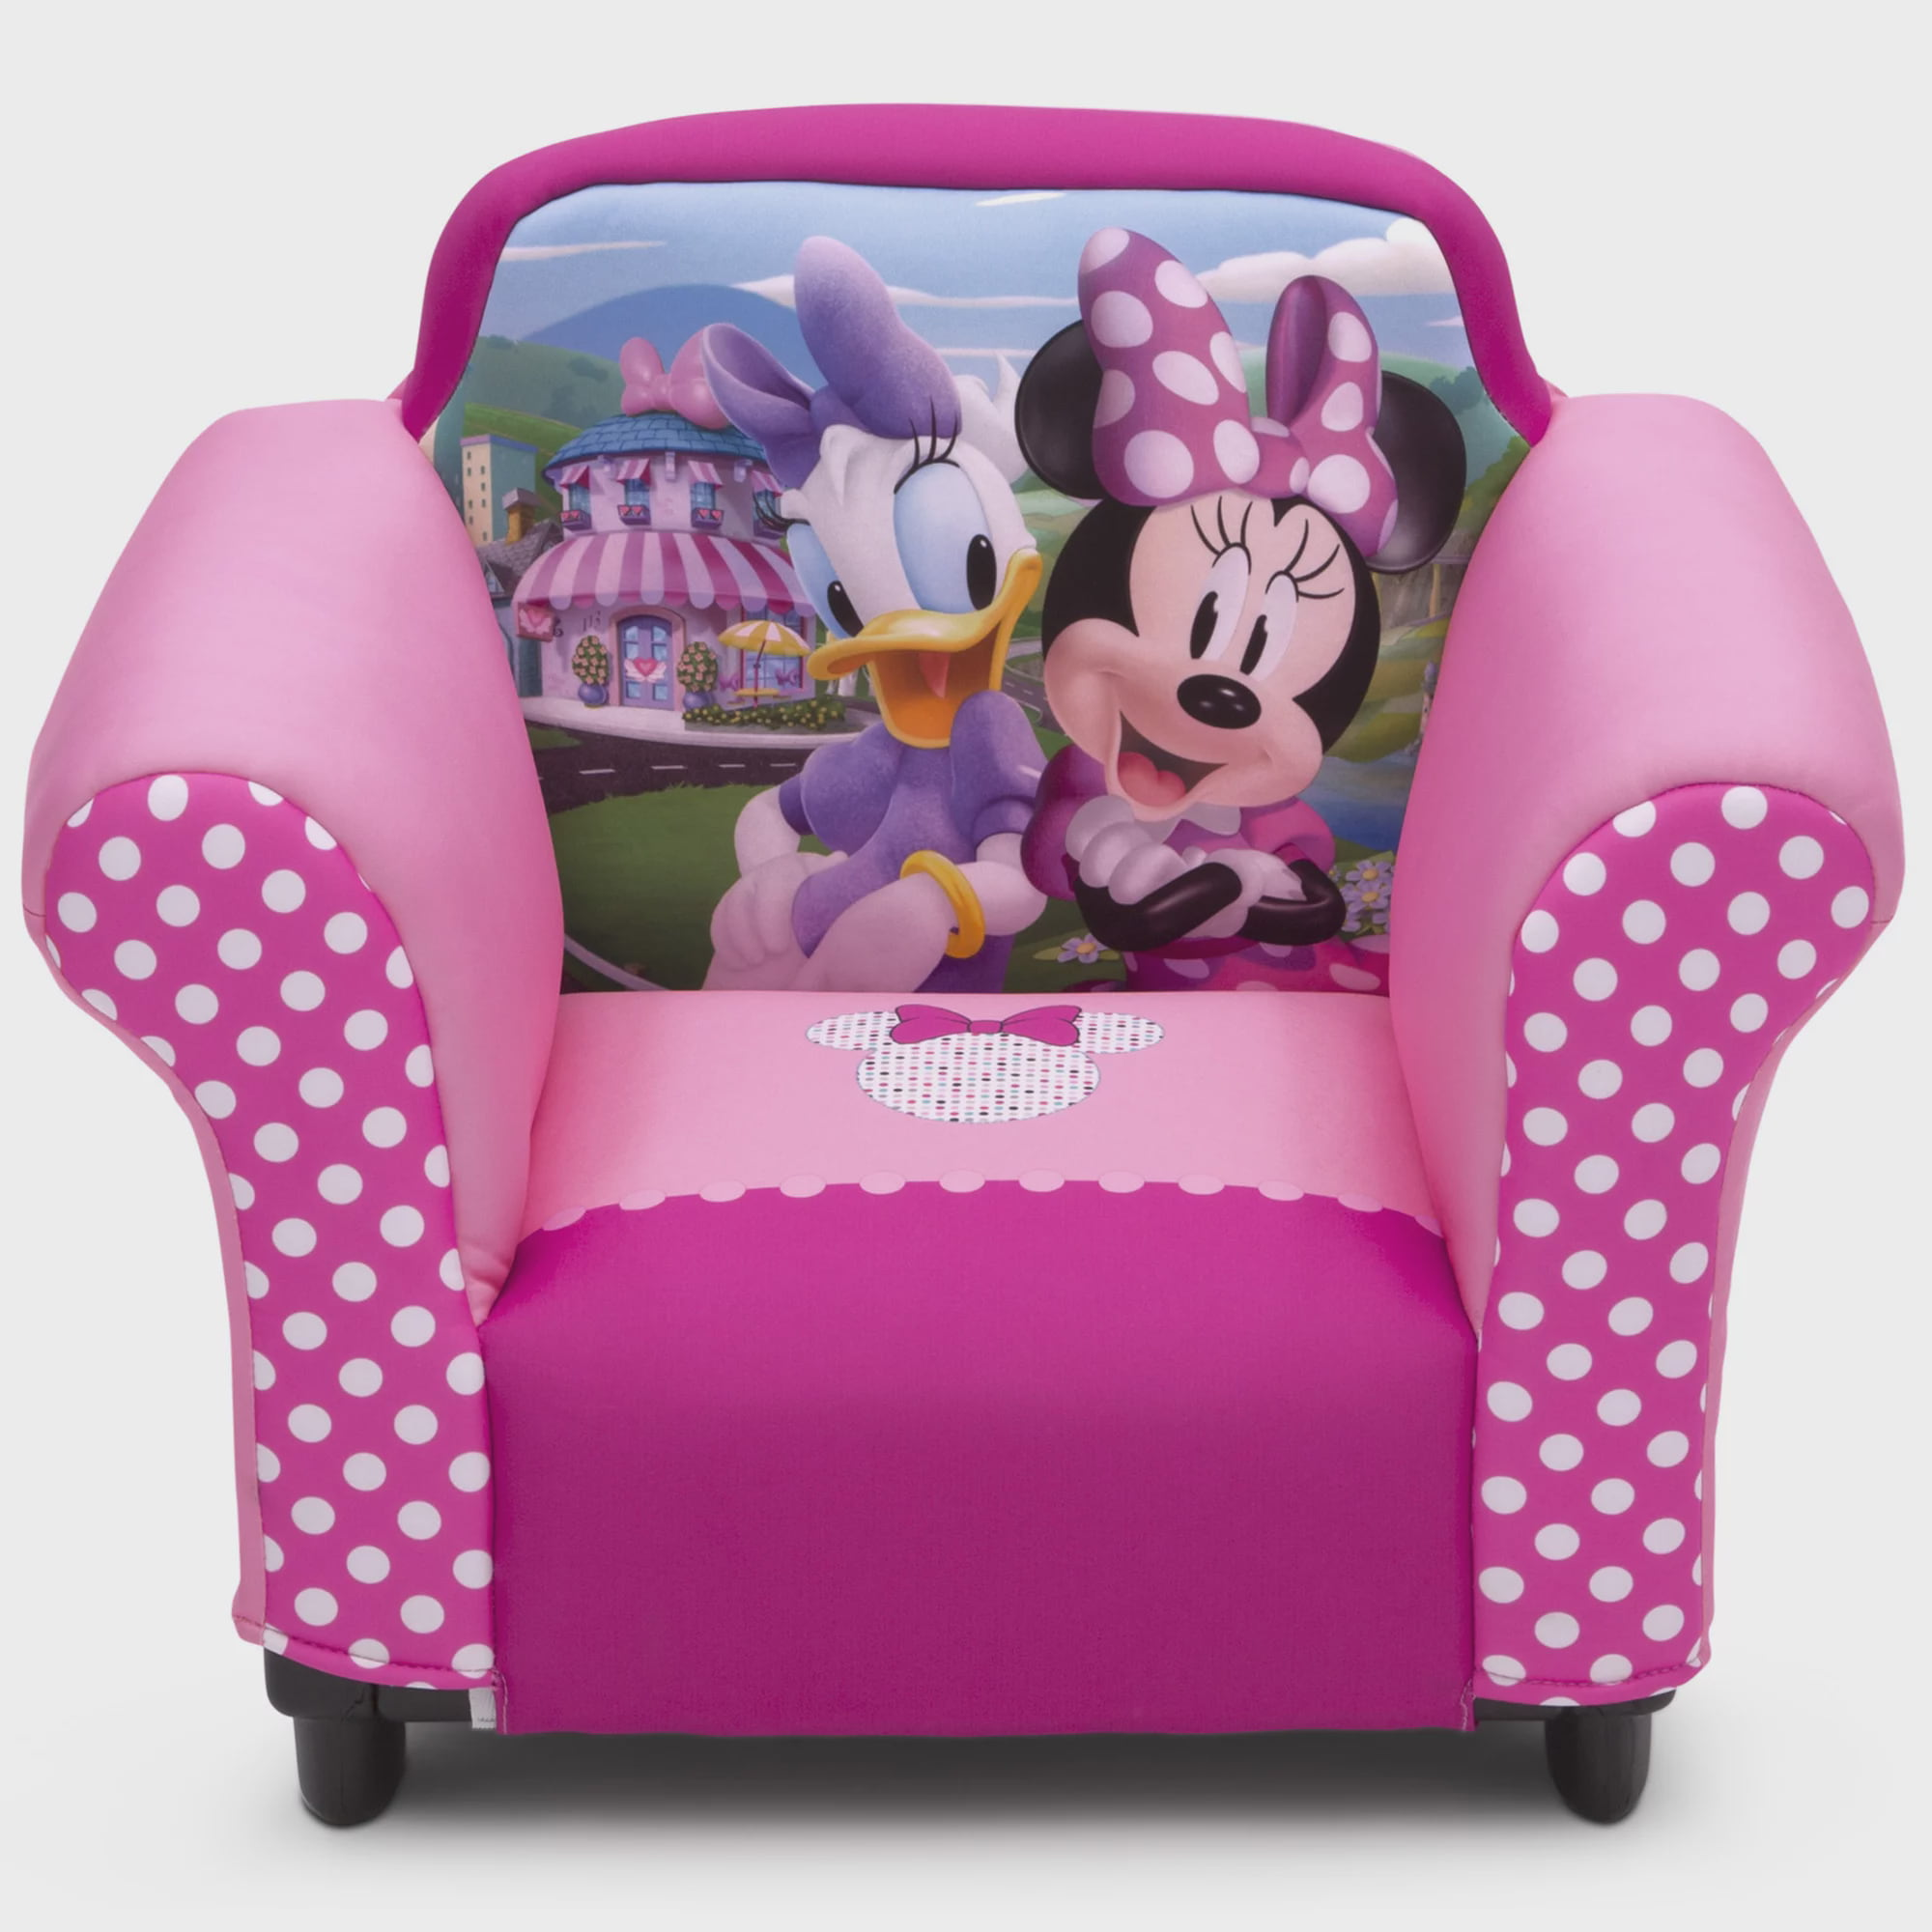 Delta Children Disney Minnie Mouse Kids Upholstered Chair with